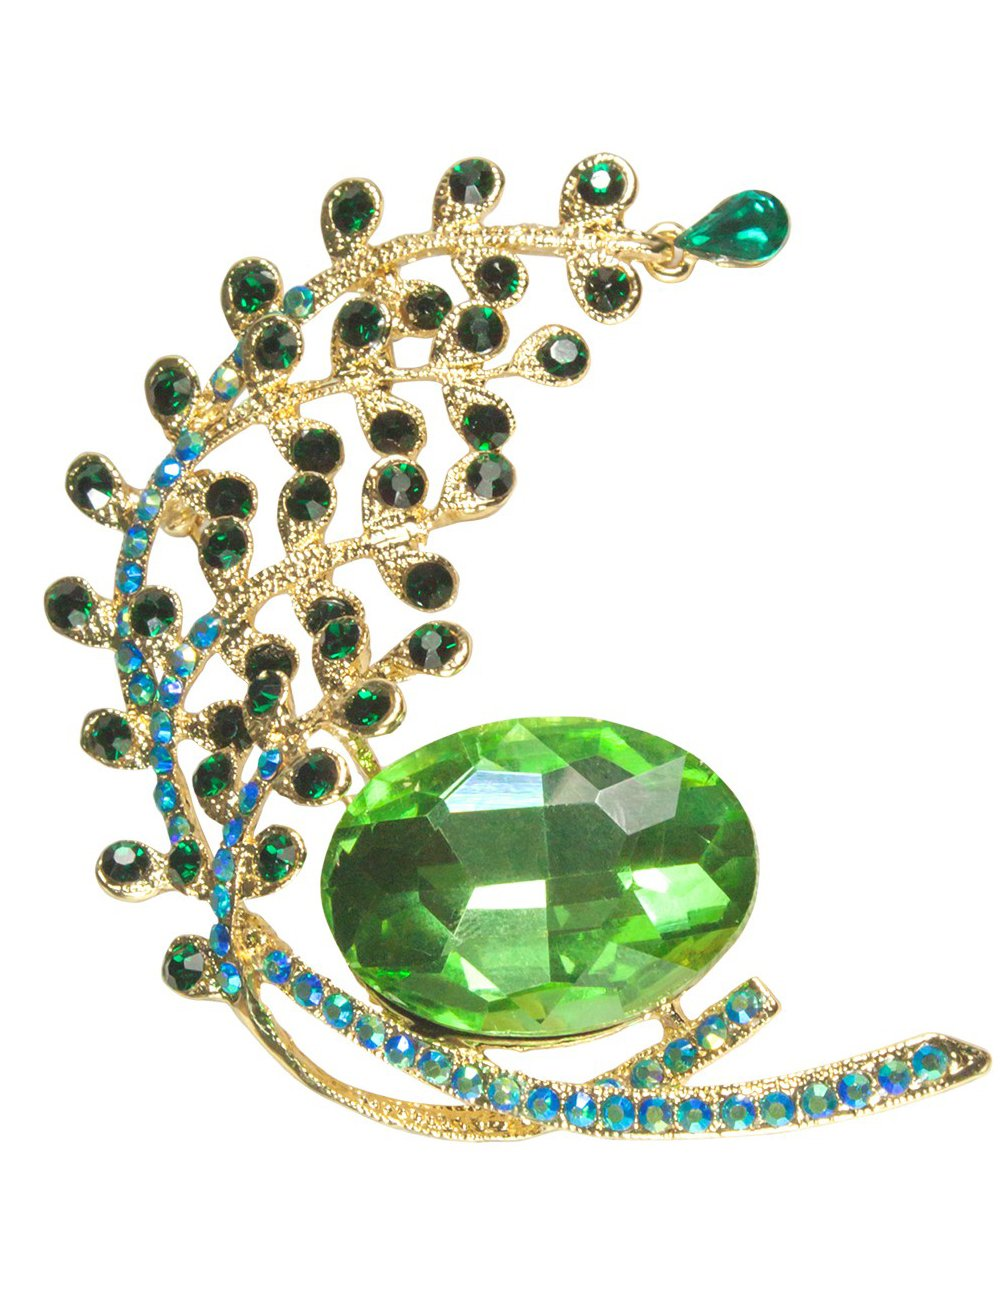 Dahlia Peacock Tail Emerald Crystal Brooch Pin - Gold